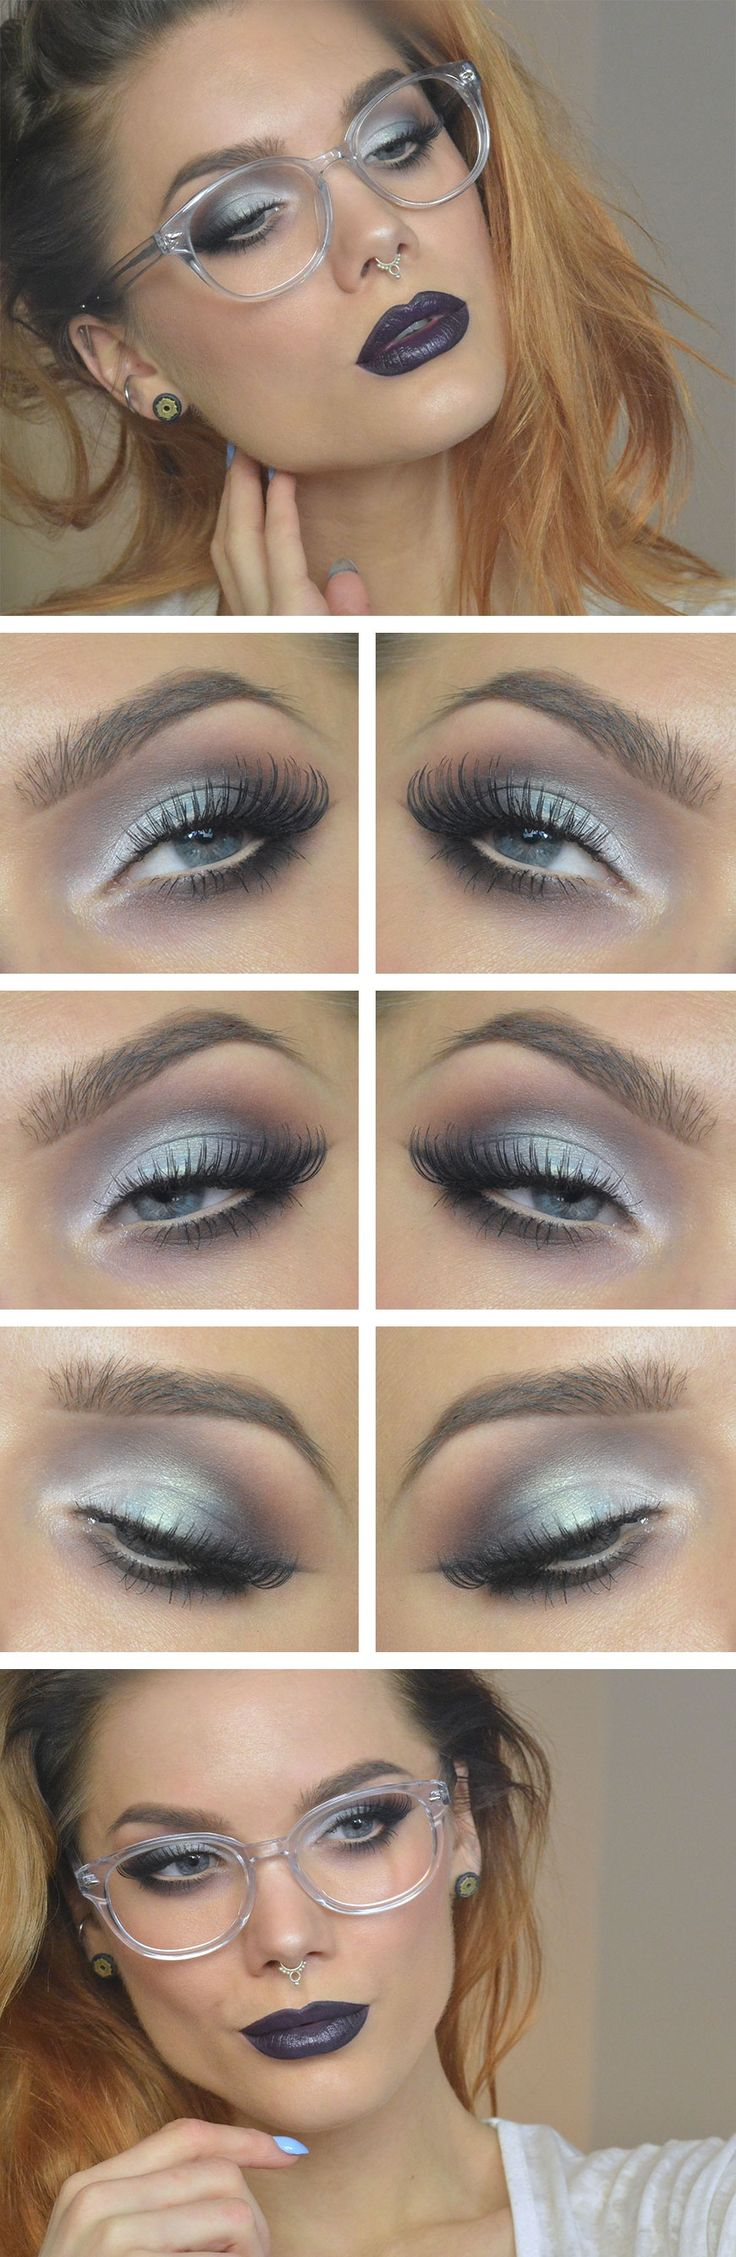 best makeup images on pinterest beauty makeup flawless